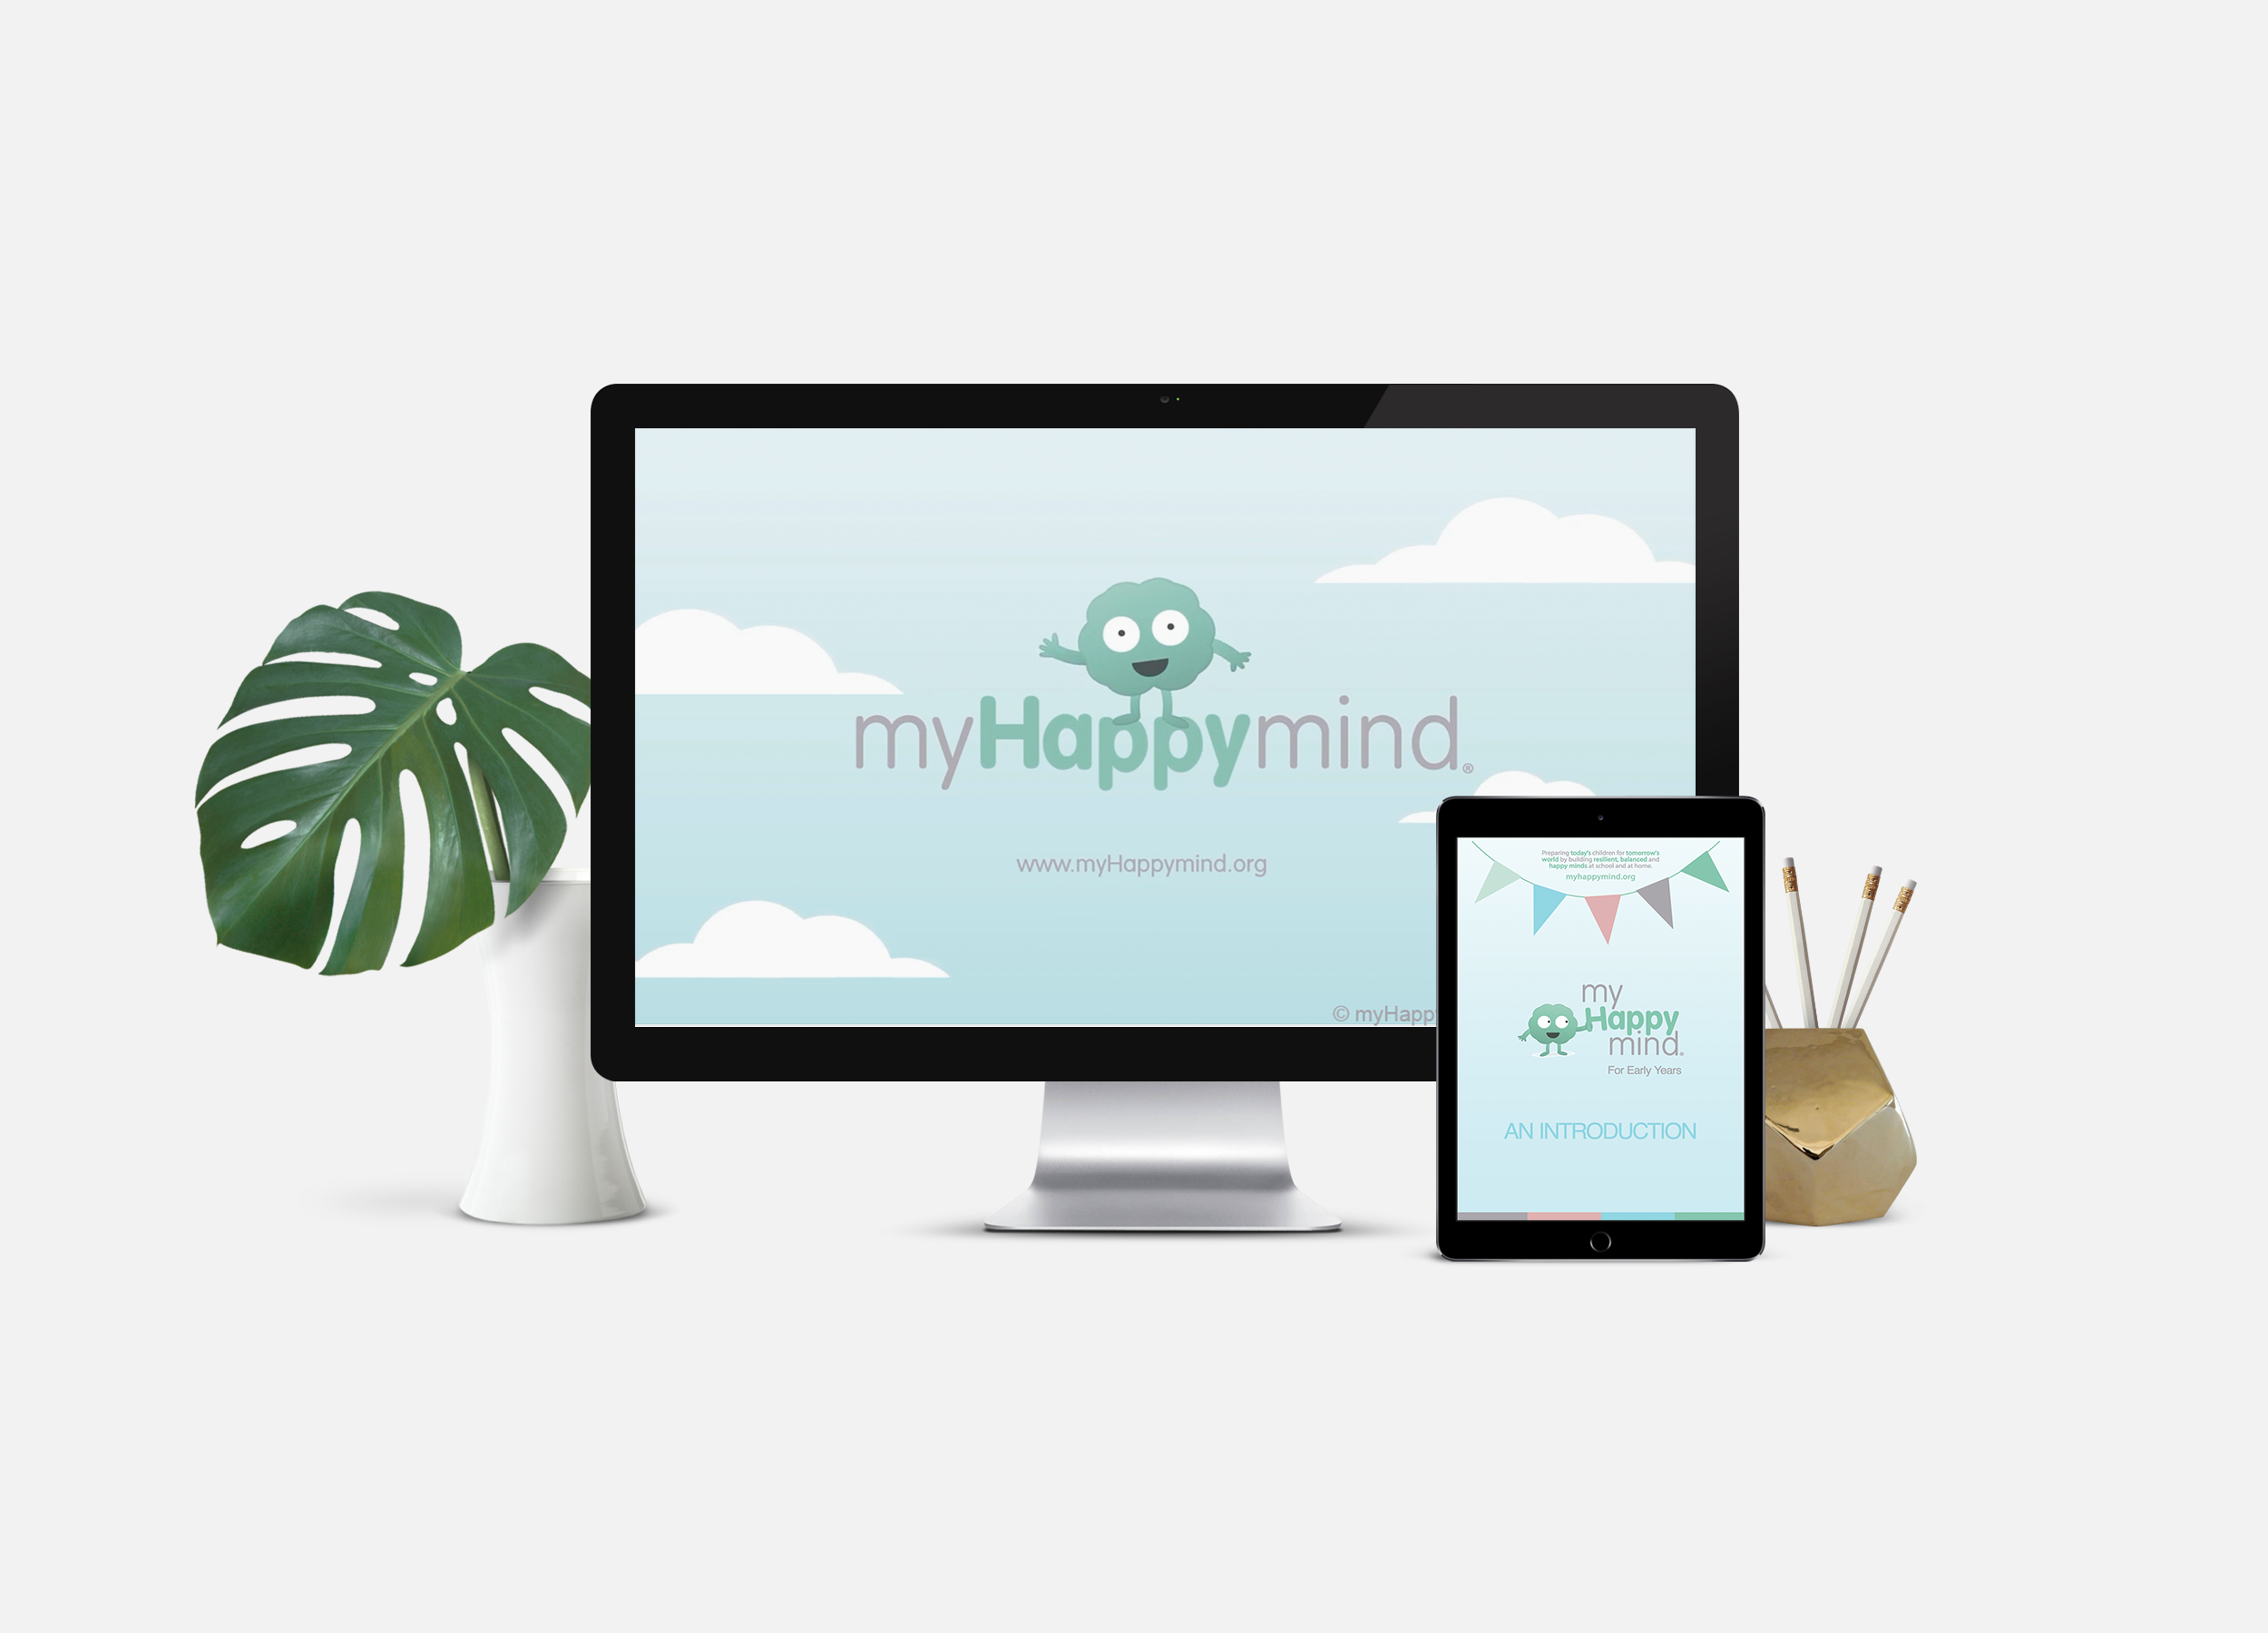 myHappymind for Schools is a complete mental health curriculum